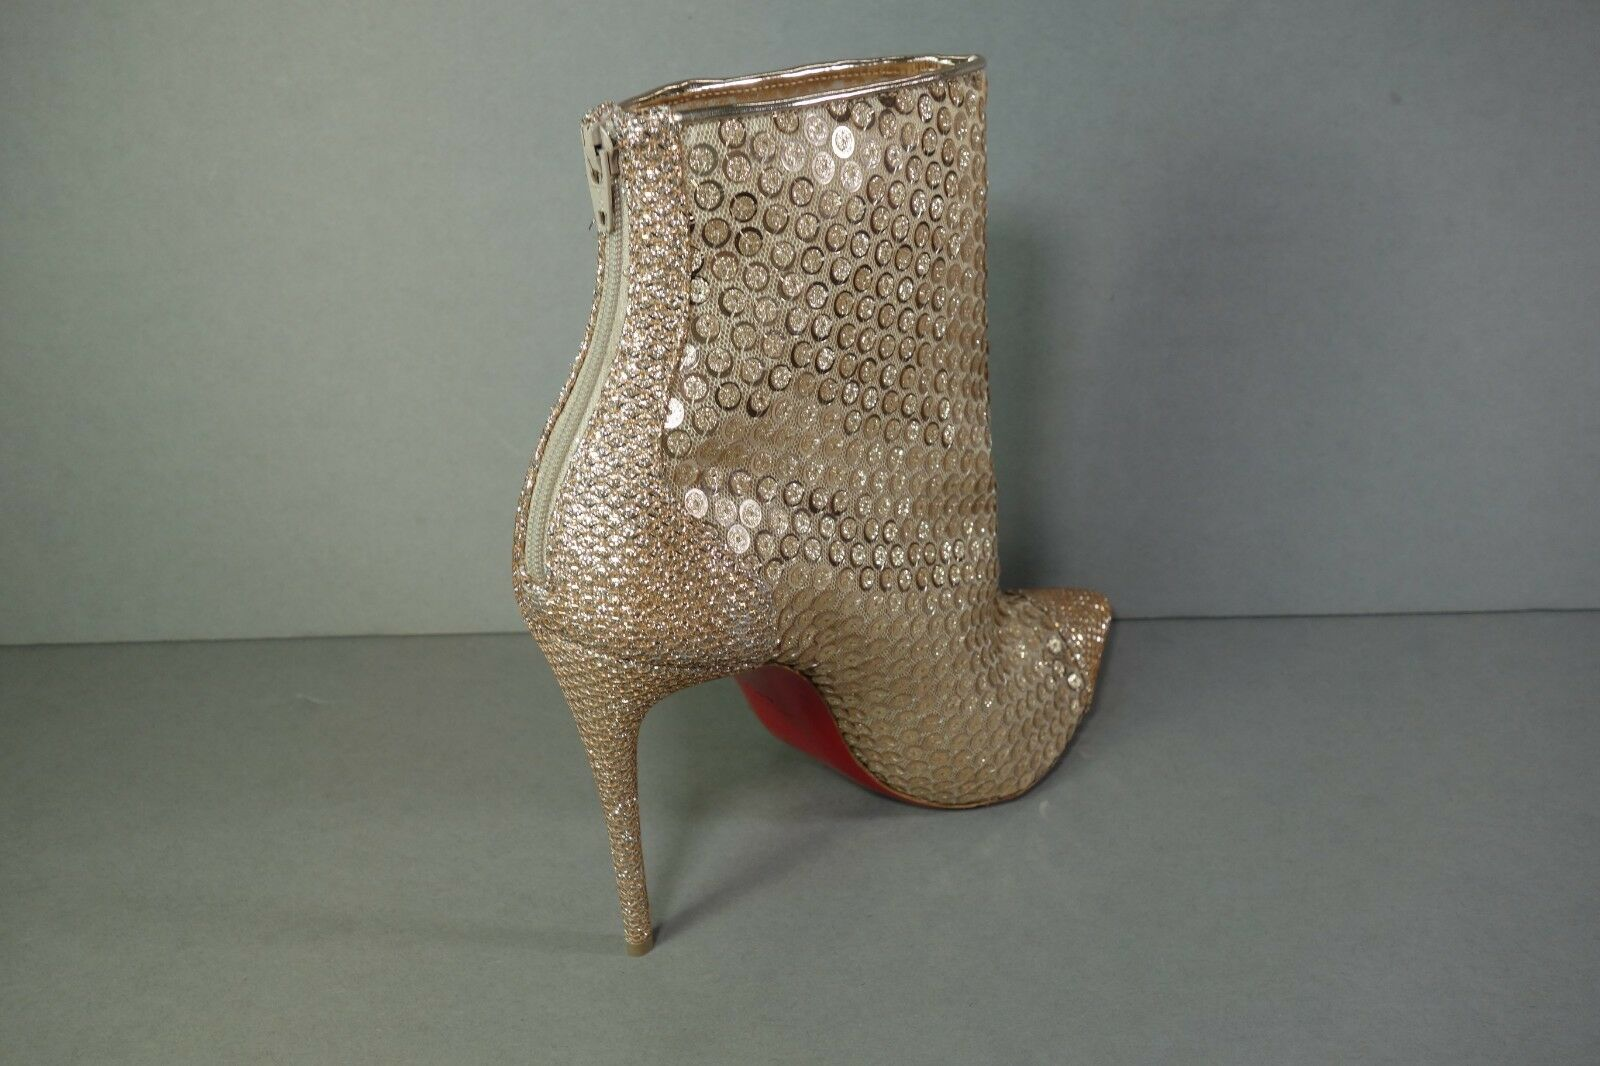 Louboutin 40.5 10 GipsyStiefelie SPC100 SPC100 SPC100 Gold Sequins Mesh ankle Stiefel Stiefelies New 8e56bc